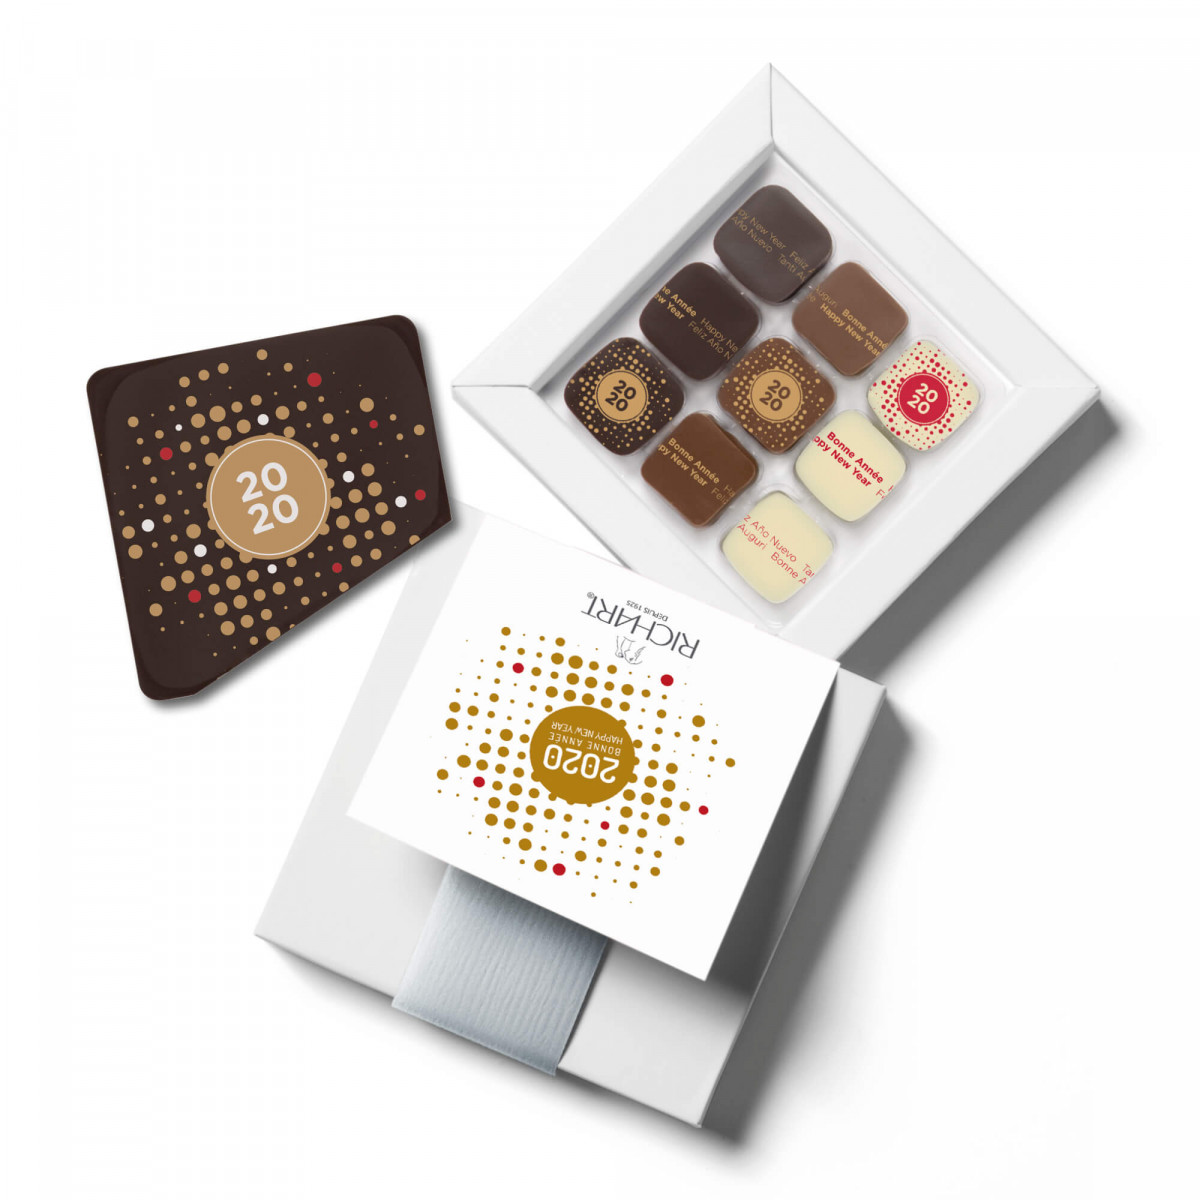 Constellations Best Wishes box of 9 filled chocolates and Best Wishes chocolate card